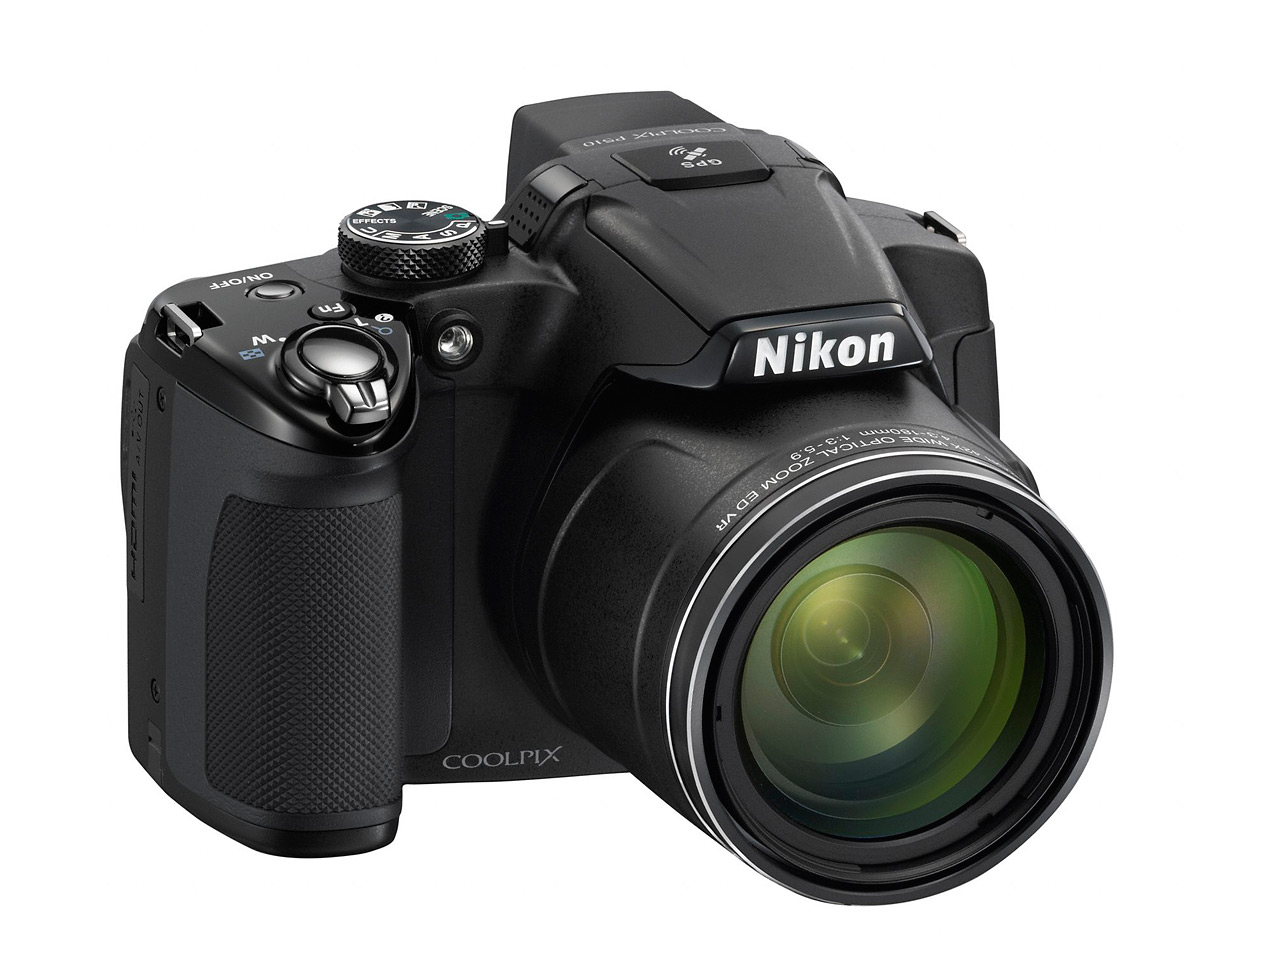 Nikons New Coolpix P Series Pair Packs A Potent Punch Of Optical Excellence And Powerful Performance